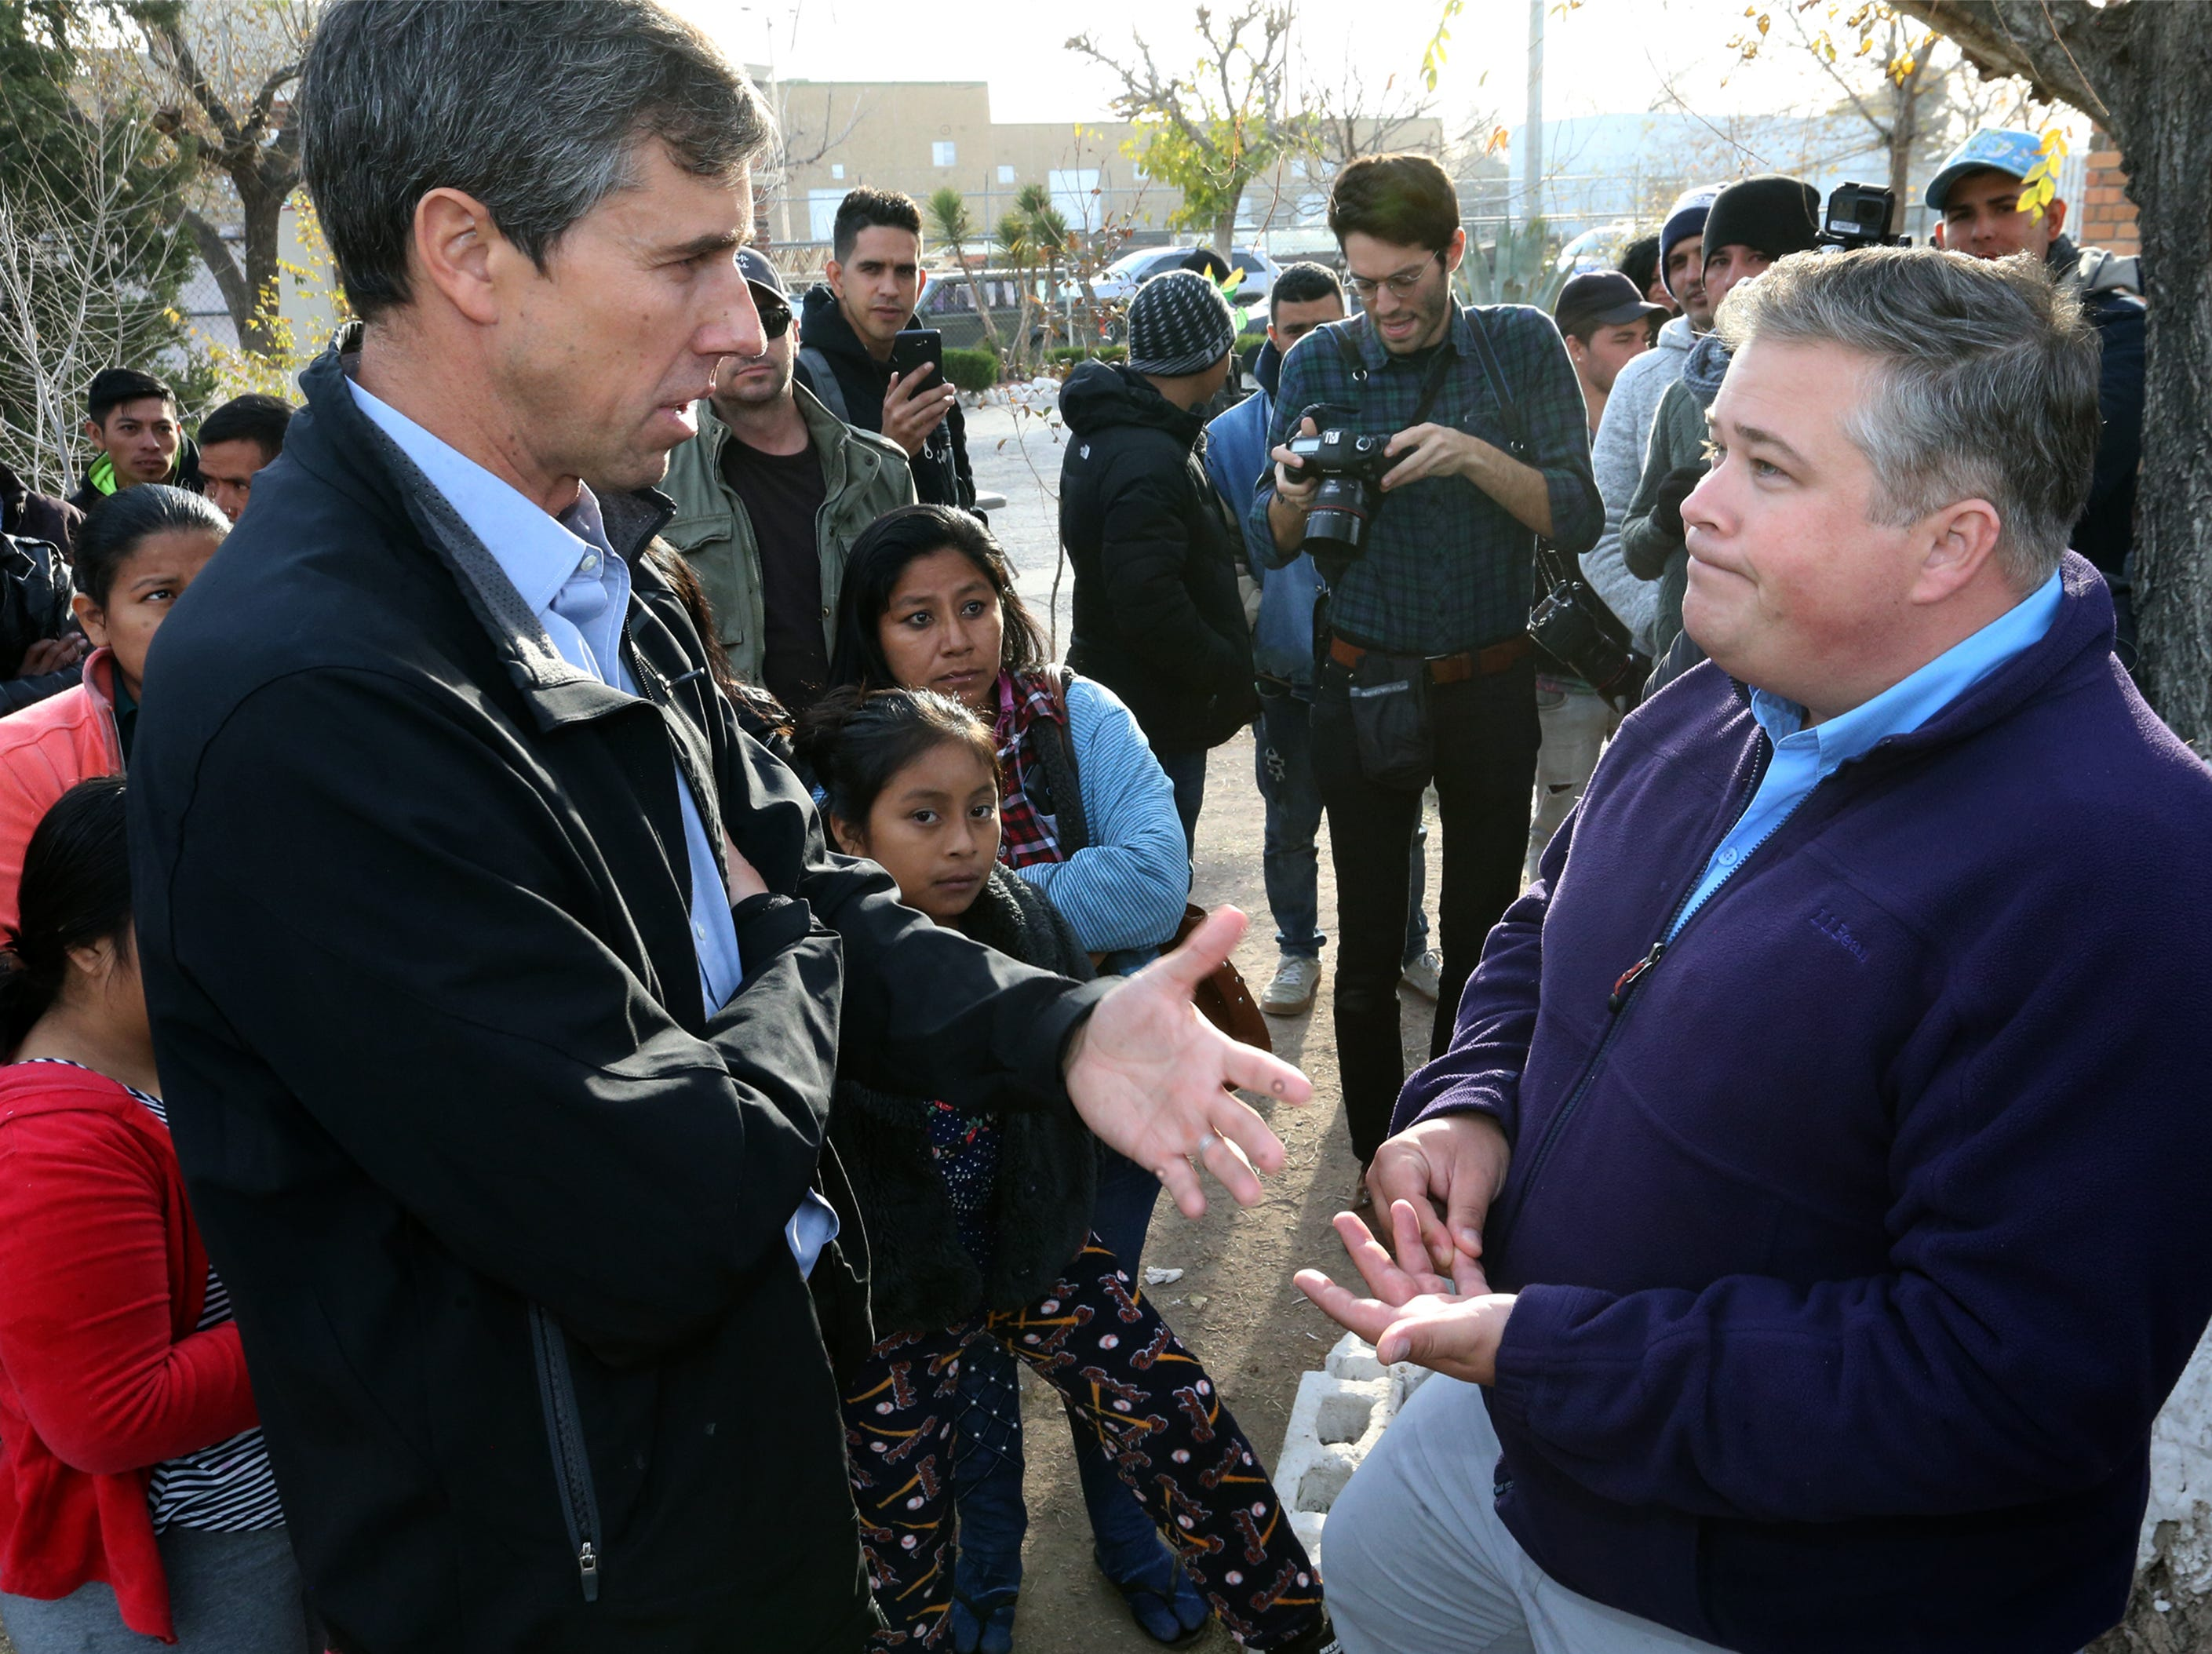 U.S Rep. Beto O'Rourke speaks with Dylan Corbett of Hope Border Institute during a visit to Casa del Imigrante shelter in Juarez Friday.